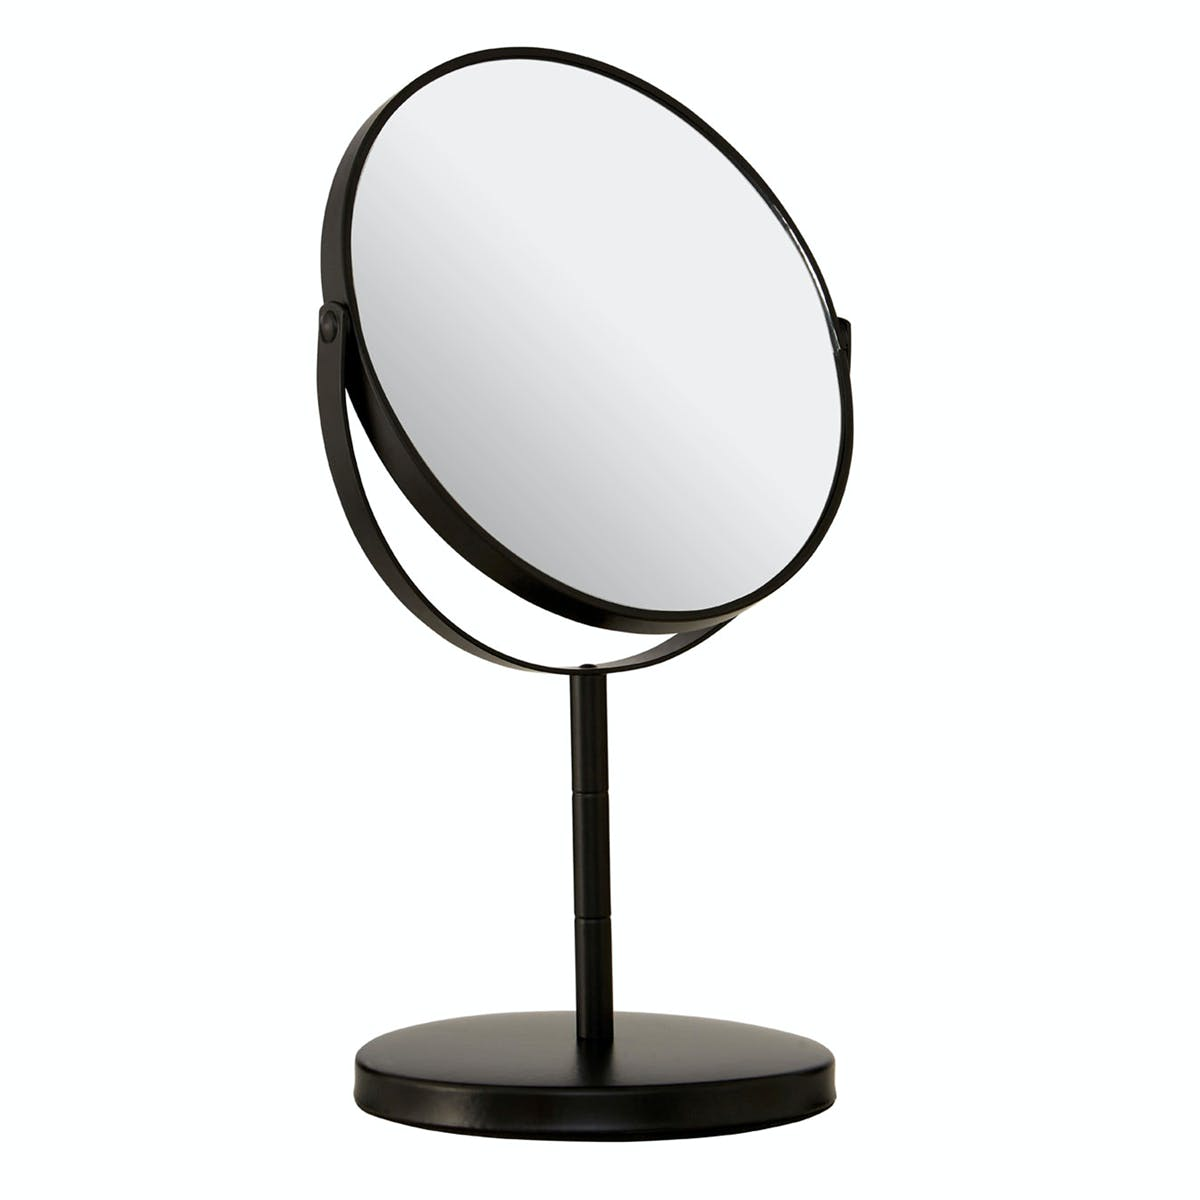 Accents Black Large Freestanding Vanity Mirror With 2x Magnification Victoriaplum Com